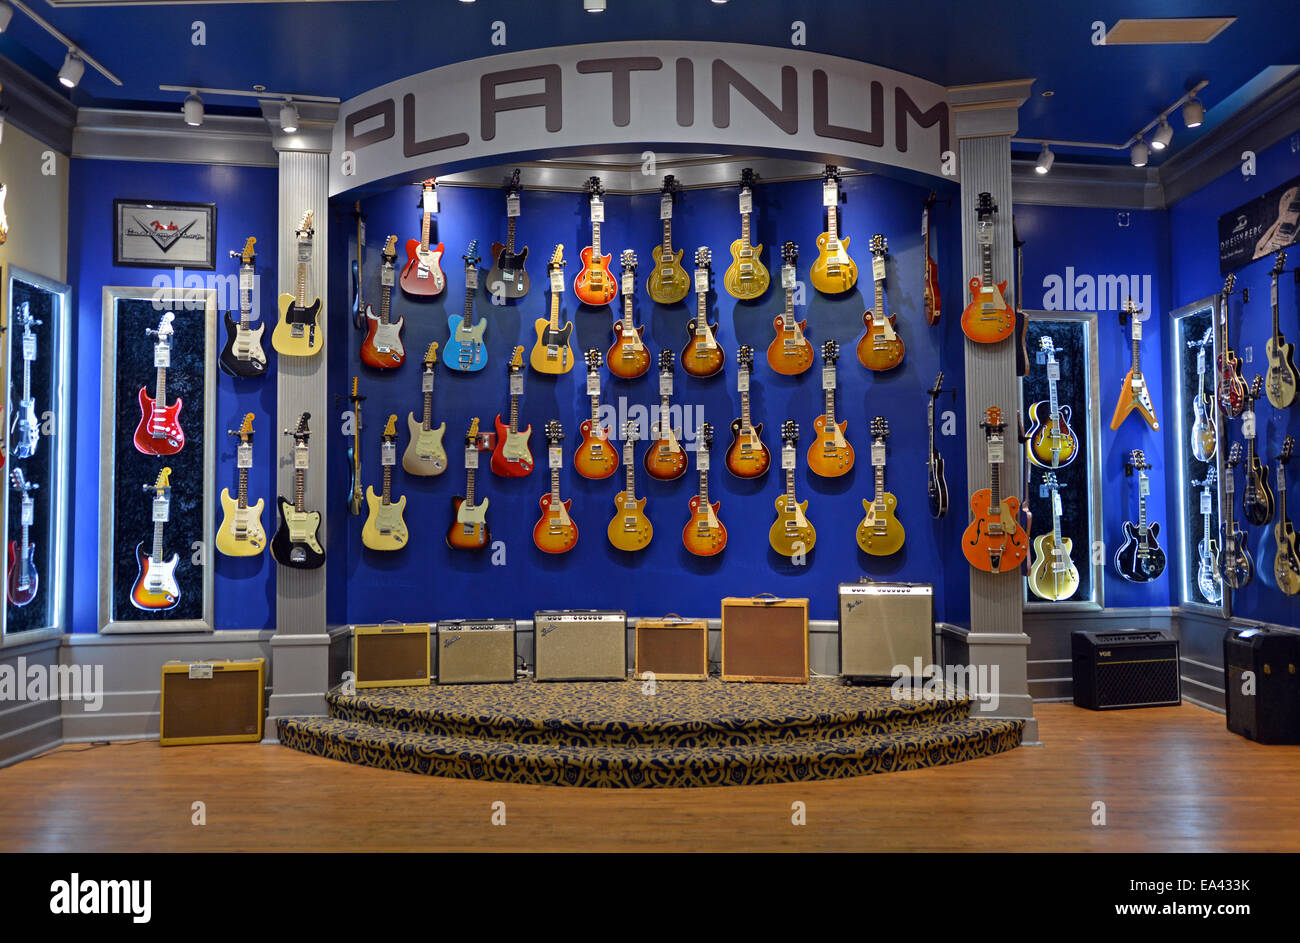 vintage guitars and amplifiers for sale at the guitar center on west stock photo 75078295 alamy. Black Bedroom Furniture Sets. Home Design Ideas